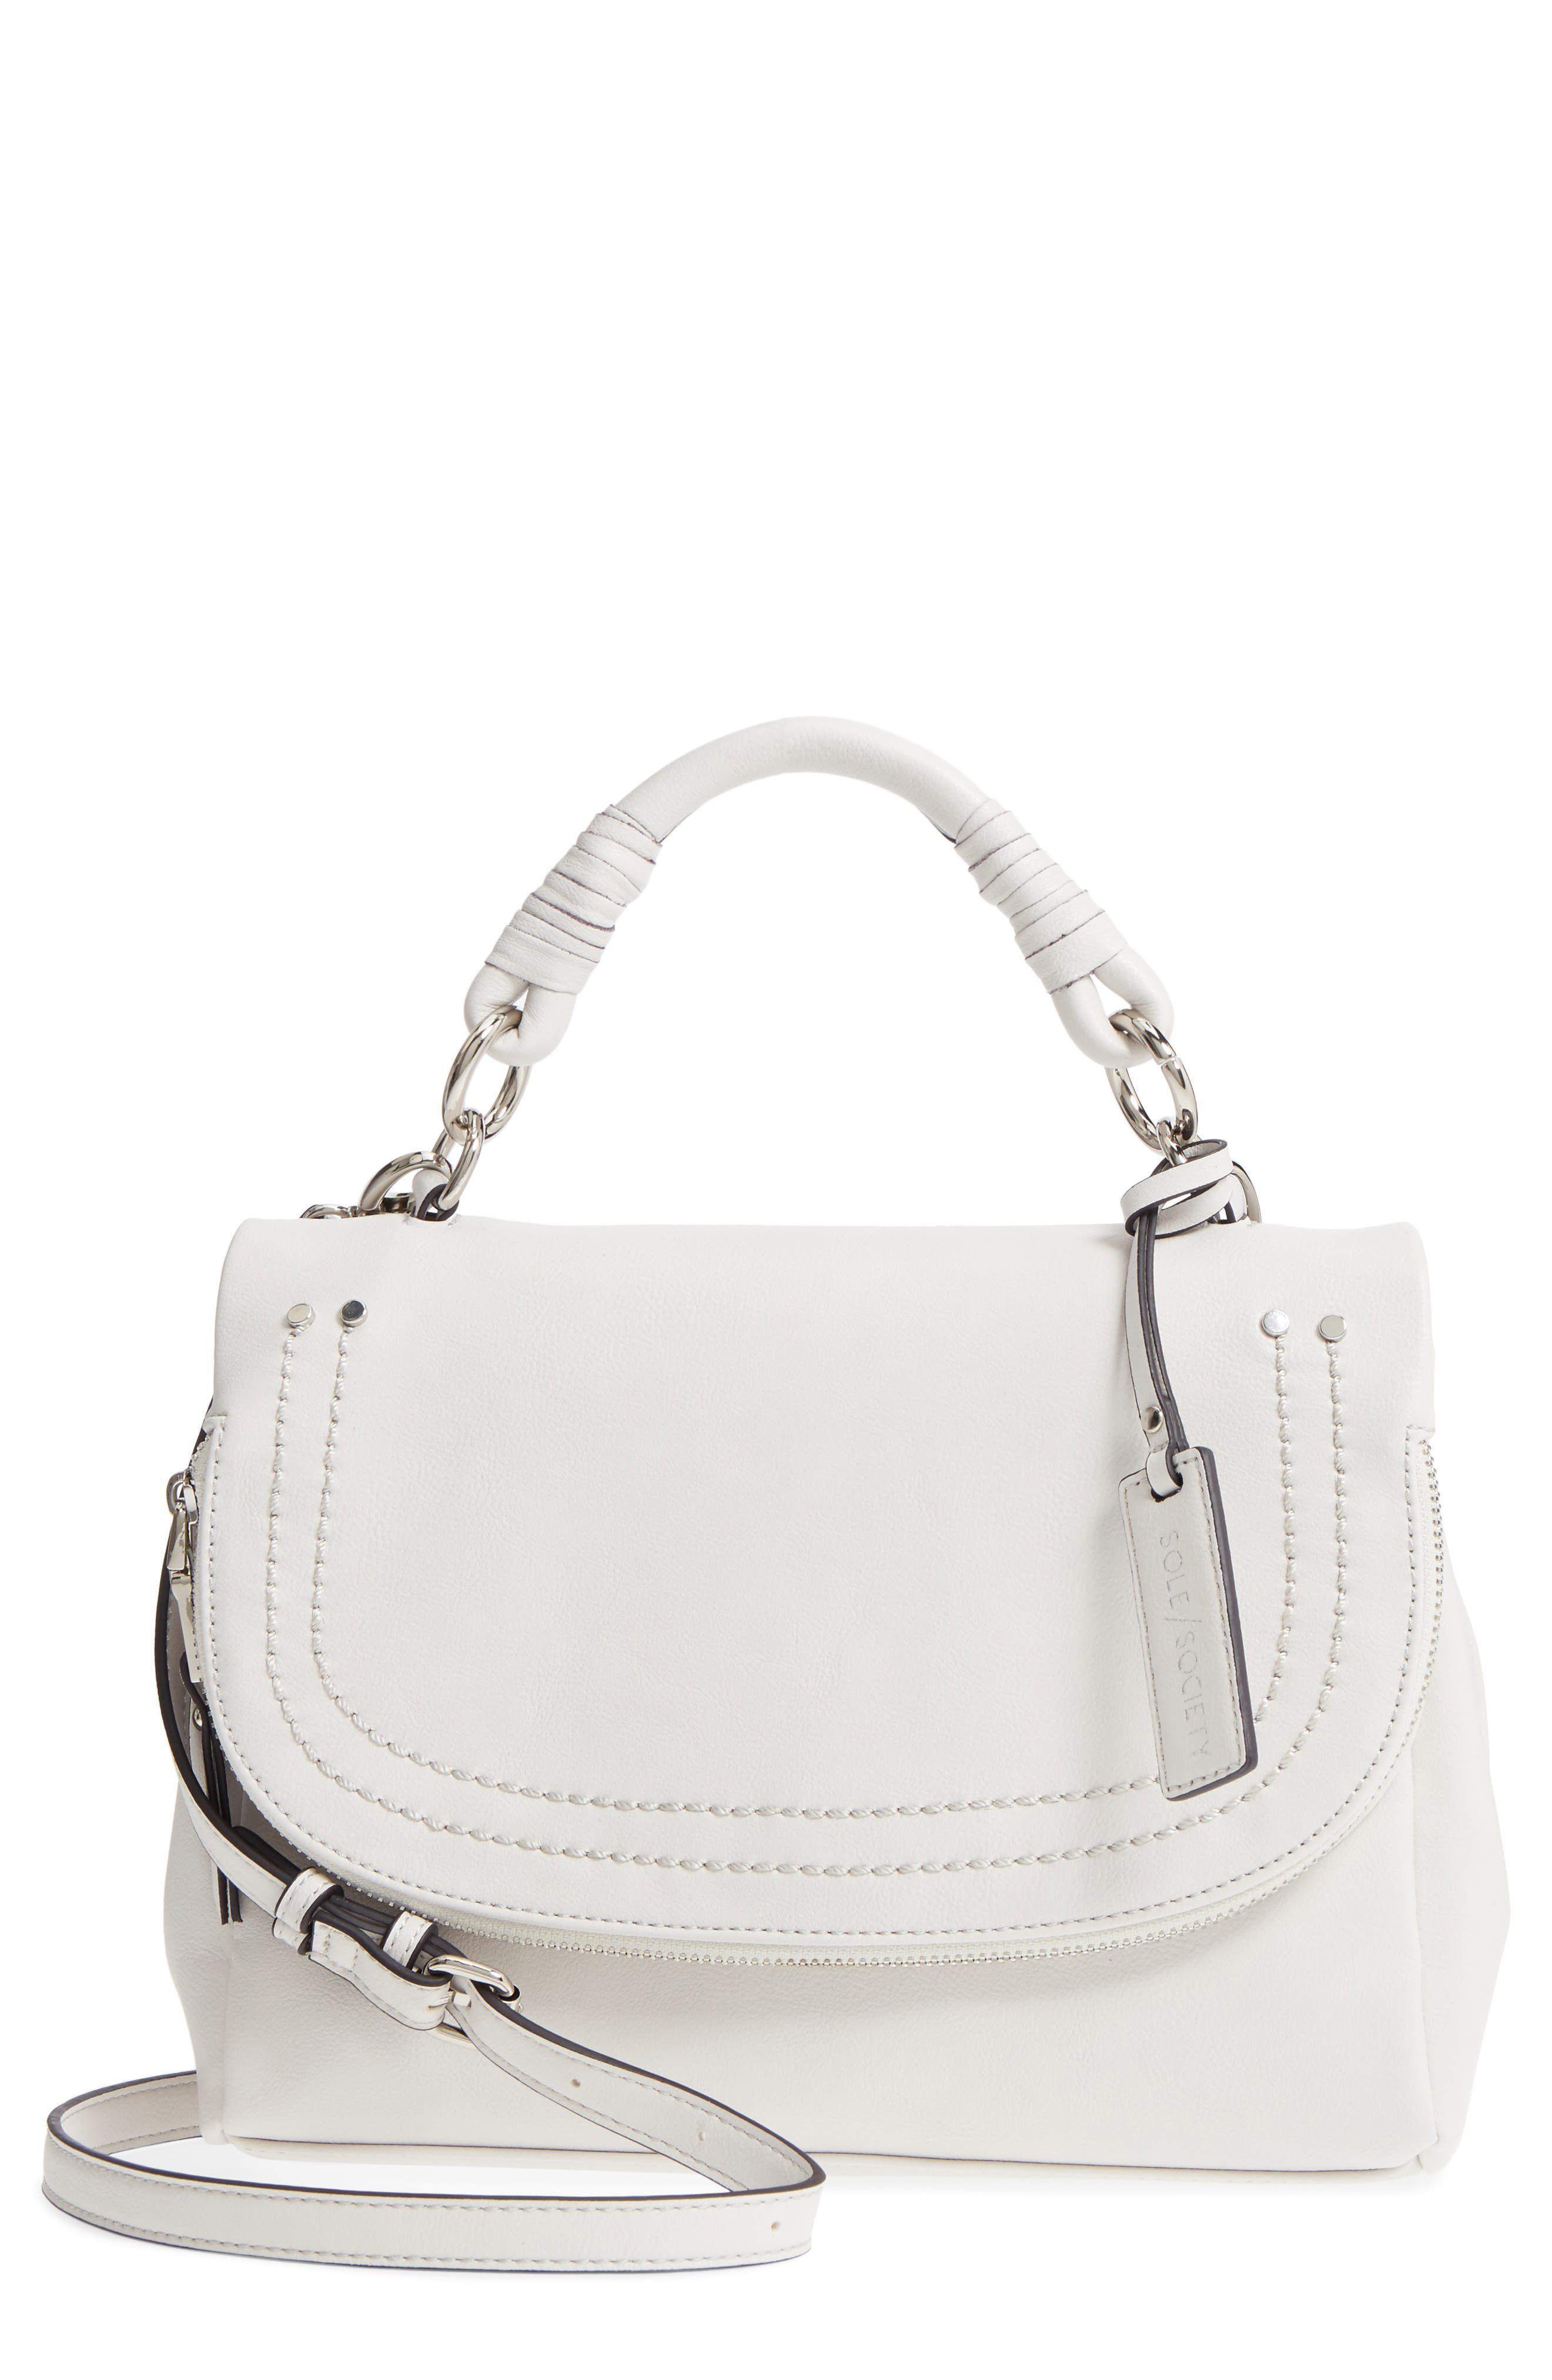 Top Handle Faux Leather Crossbody Bag,                             Main thumbnail 1, color,                             Linen White